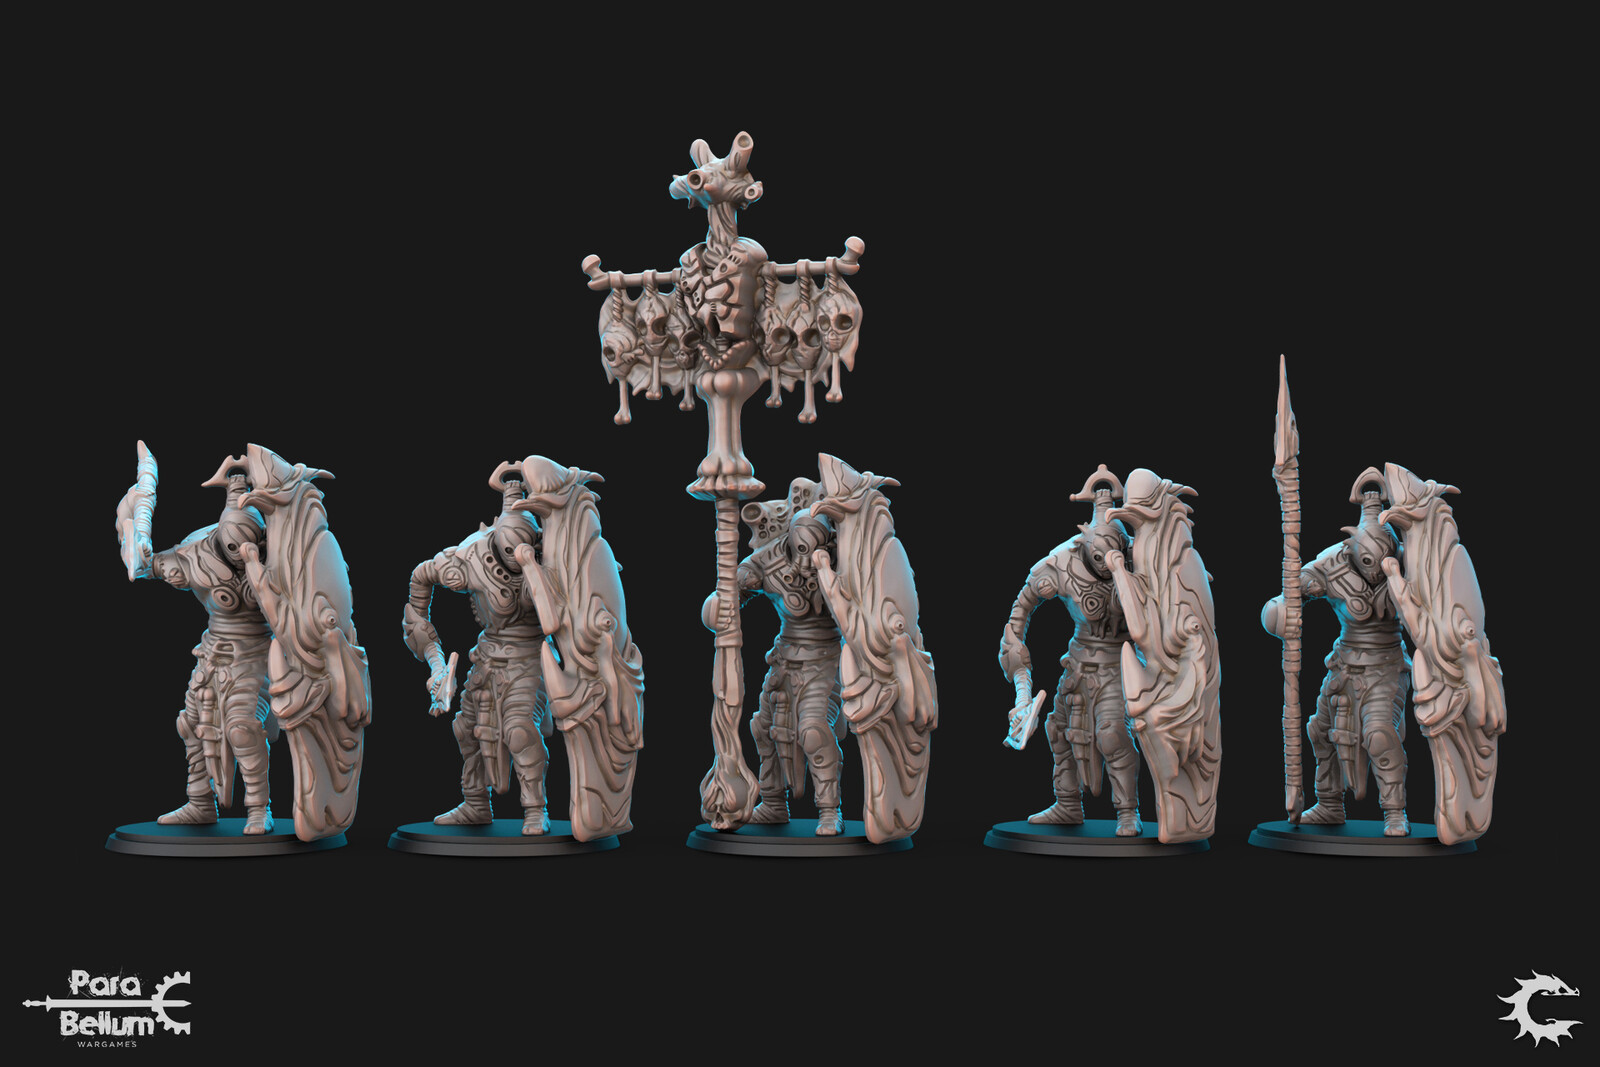 Production Ready Sculpts. 